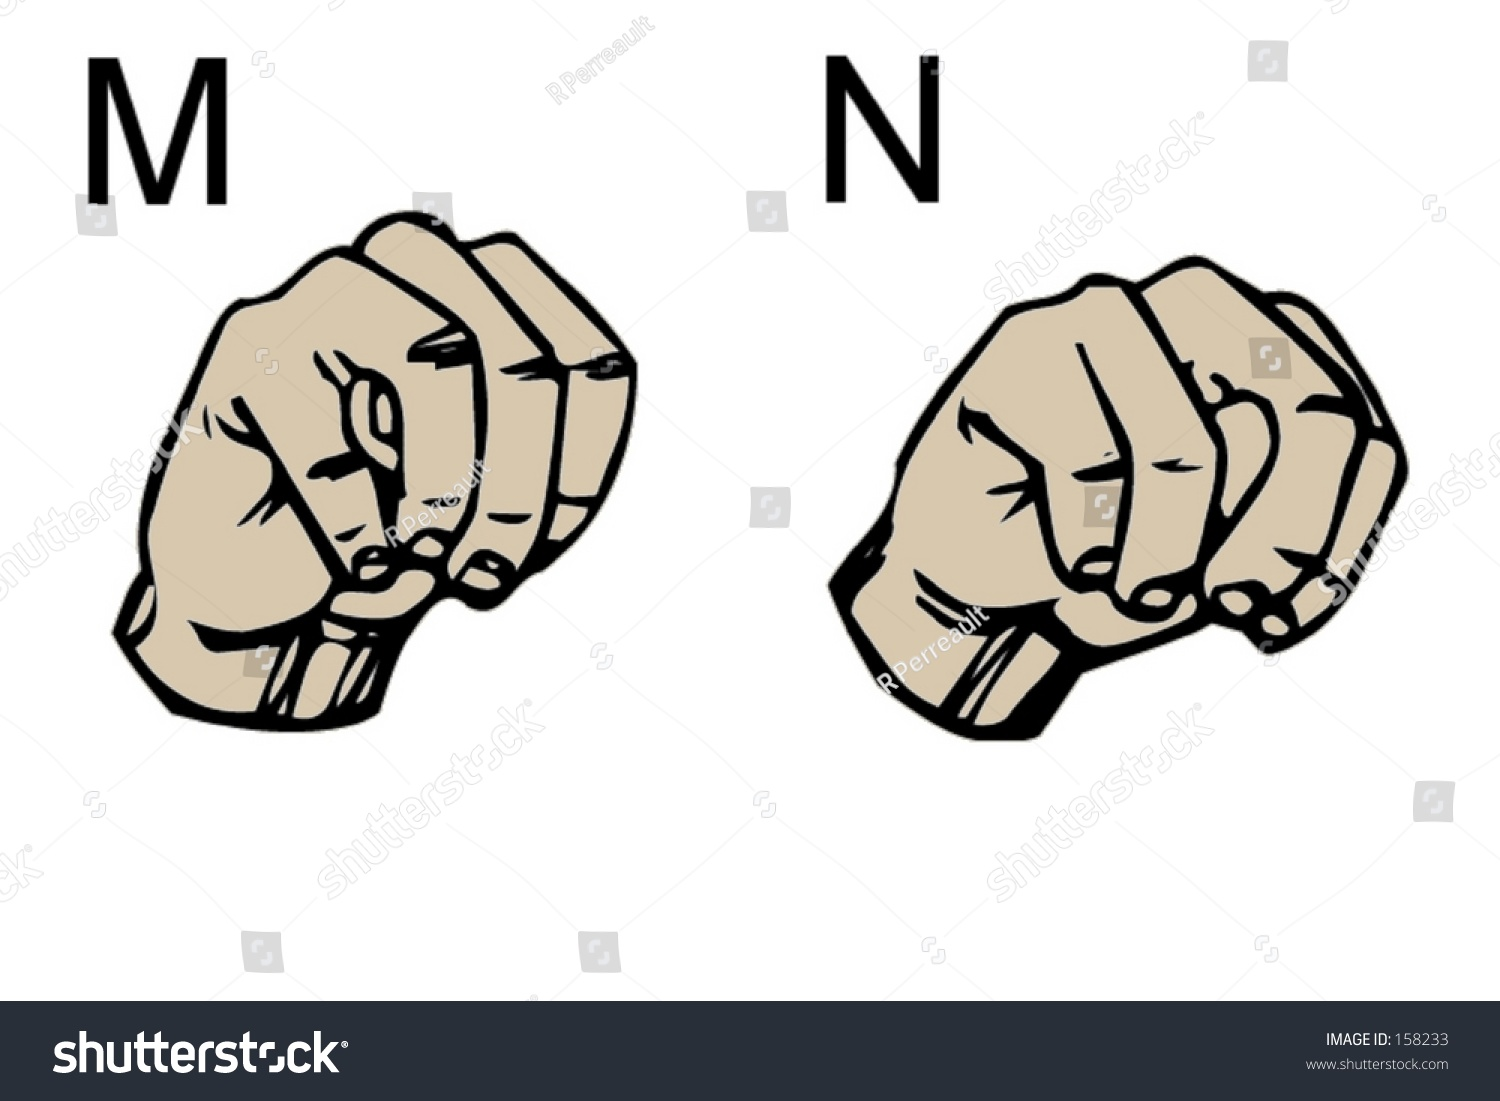 english sign language letters m n stock photo 158233 shutterstock. Black Bedroom Furniture Sets. Home Design Ideas